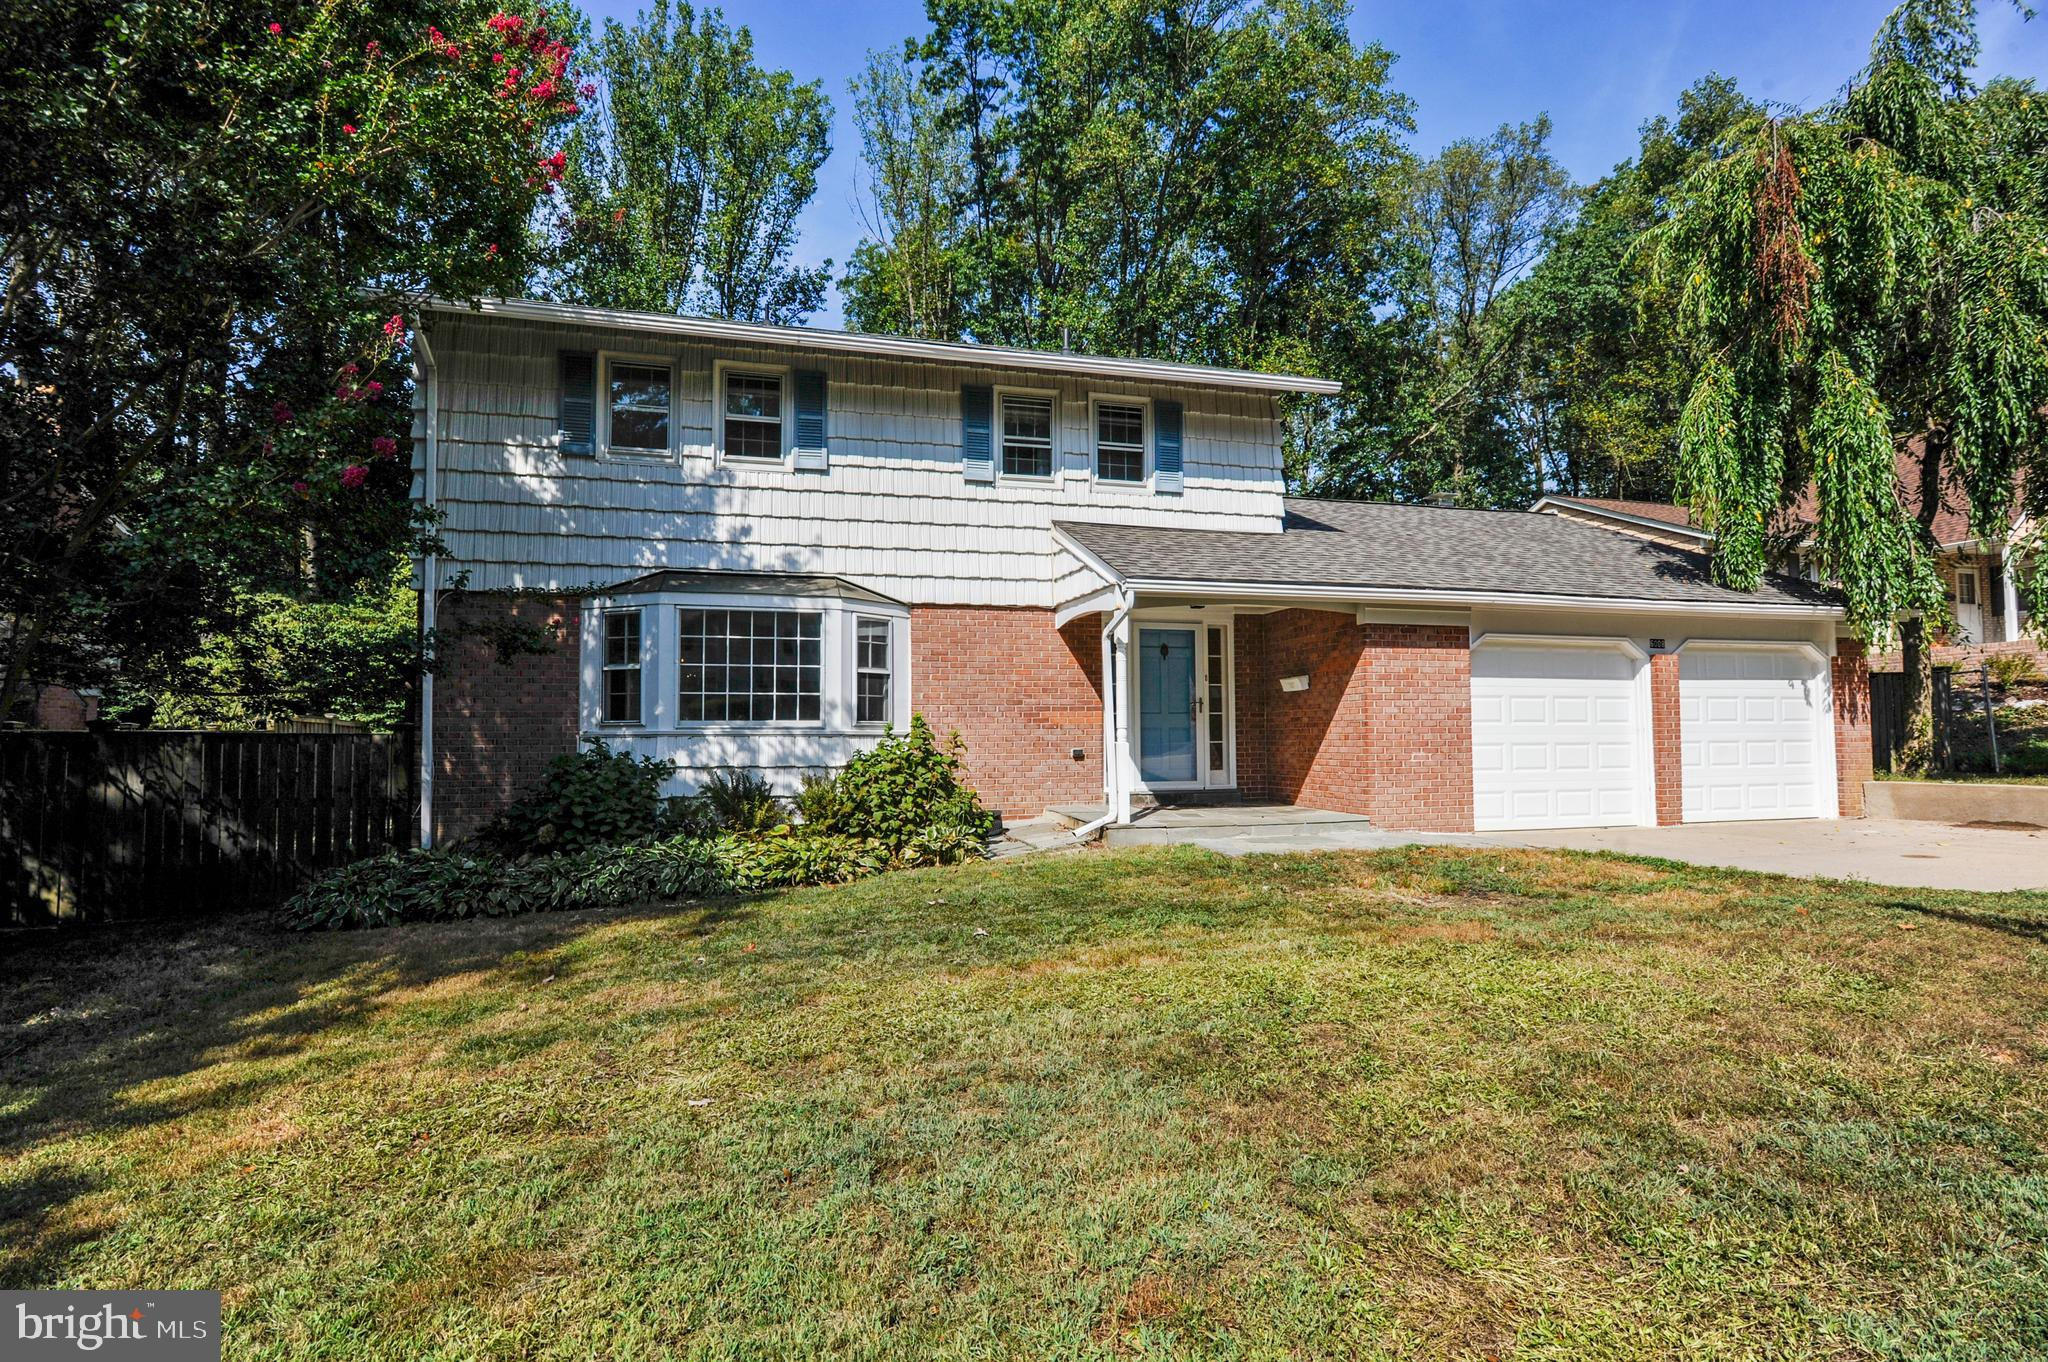 Spacious 3 level colonial on 1/3 acre lot with pool and fenced back yard in sought after Cardinal Forest/West Springfield HS pyramid.  Home features large gourmet kitchen with stainless appliances, plenty of cabinet storage, tv and granite counters; kitchen with sliding glass door to deck is open to family room with fireplace and french doors to patio; lots of natural light;  Formal living room and dining room  feature solid hardwood floors. Large fenced backyard with plenty of green space in addition to pool, deck and patio.  Poolside Patio designed for an outdoor kitchen with natural gas grill hook up and both hot and cold water.  Bright upper level has  four  bedrooms with solid hardwood floors including the Master suite.  Full finished basement with back yard access features a bedroom and full bath, hobby room, huge laundry room with storage, and  party/game room with great storage and gorgeous wet bar area with large TV, beverage fridge and dishwasher for easy entertaining.  Newer chimney,  fence, new Hot Water Heater and pool vacuum.  Walk to Carrleigh Parkway Park and Lake Accotink trail access. Convenient to schools, VRE station, shopping including Whole Foods and more!